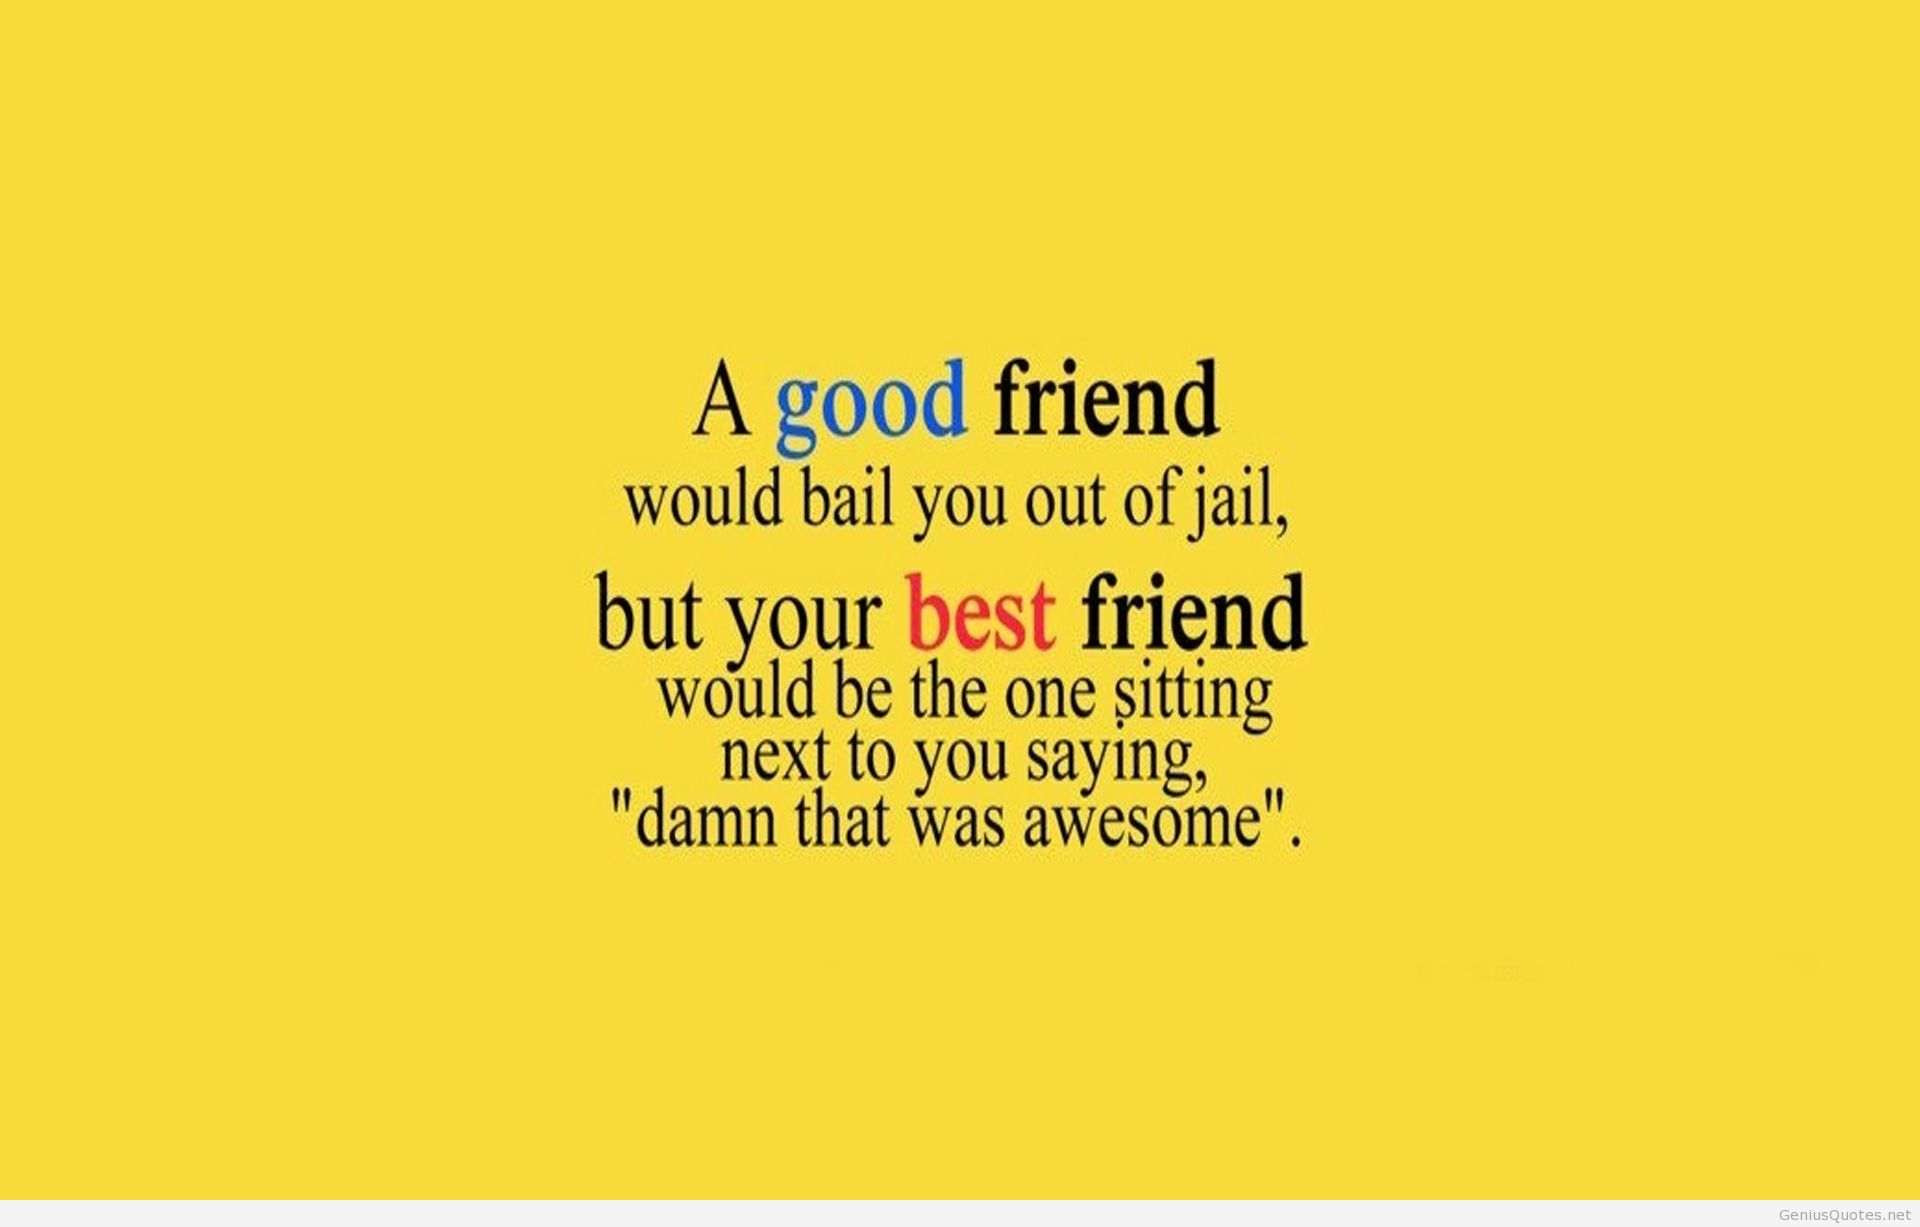 friendship images quotes - HD1920×1227